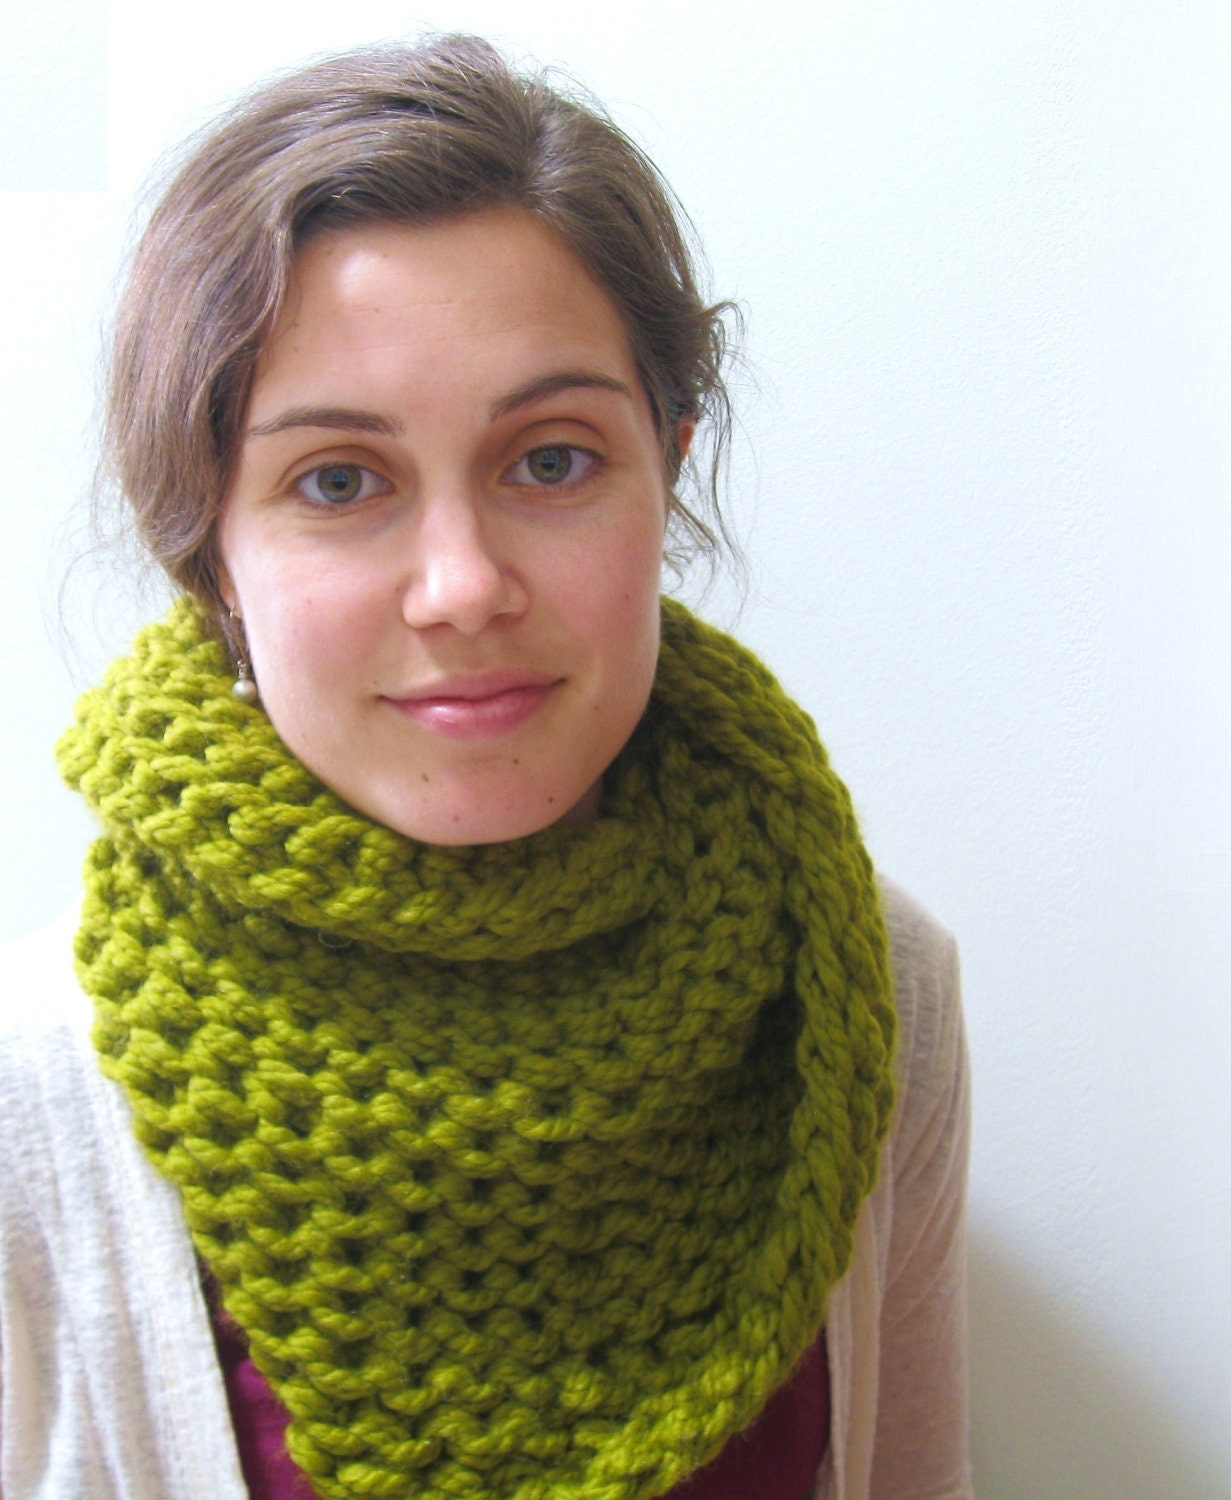 The Snug Twist Cowl - Wool Blend - Lemongrass